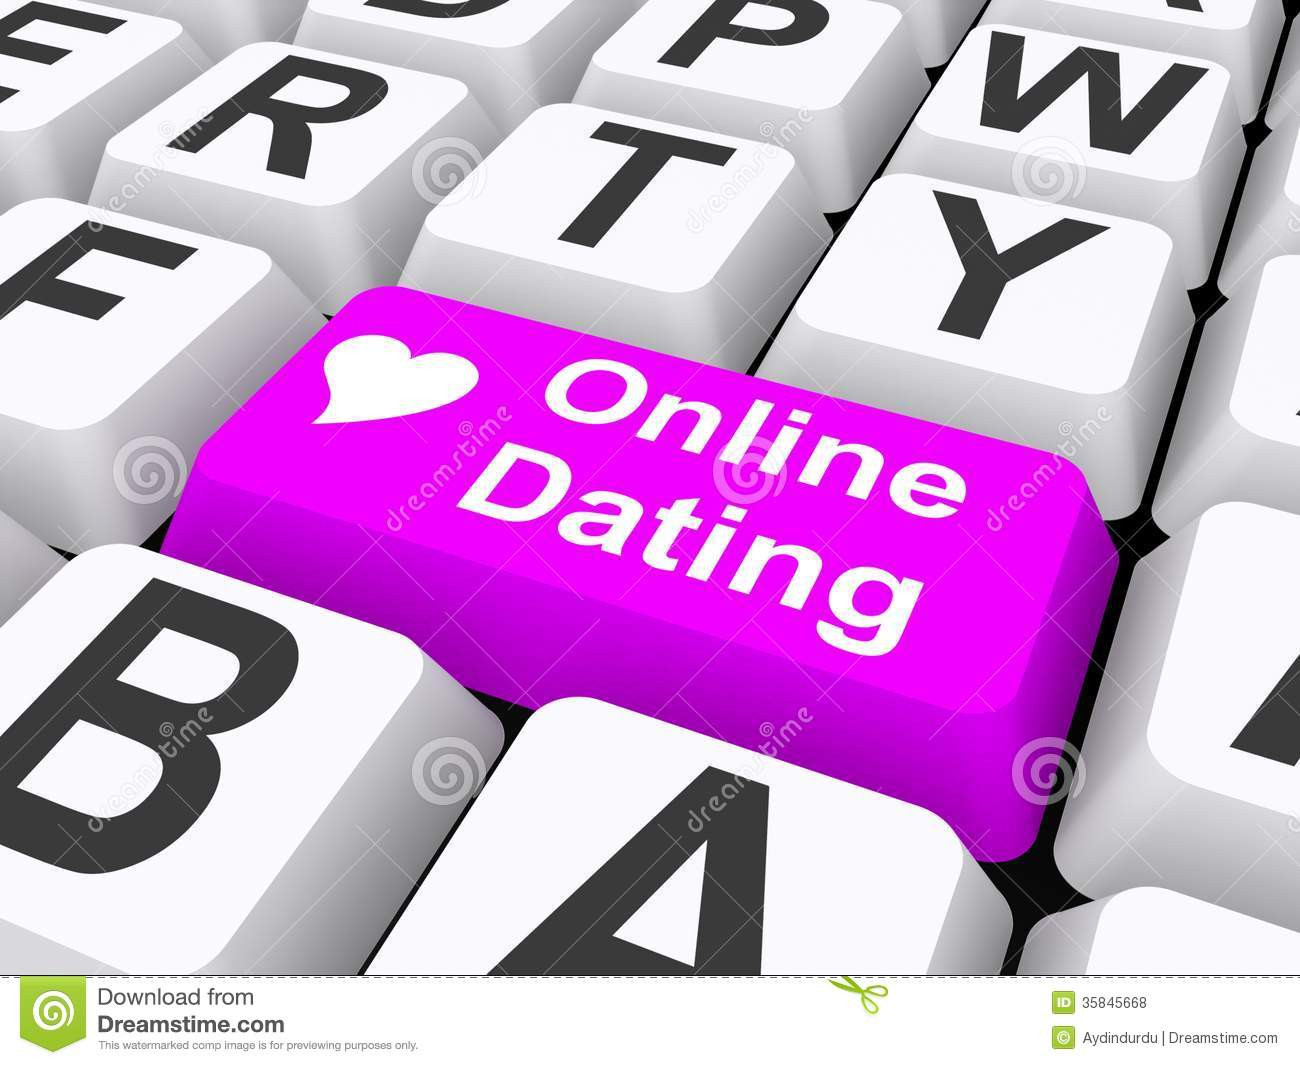 free online personals in ferney Sign up for free to find a farmer, rancher, cowboy, cowgirl or animal lover here at farmersonlycom, an online dating site meant for down to earth folks only.